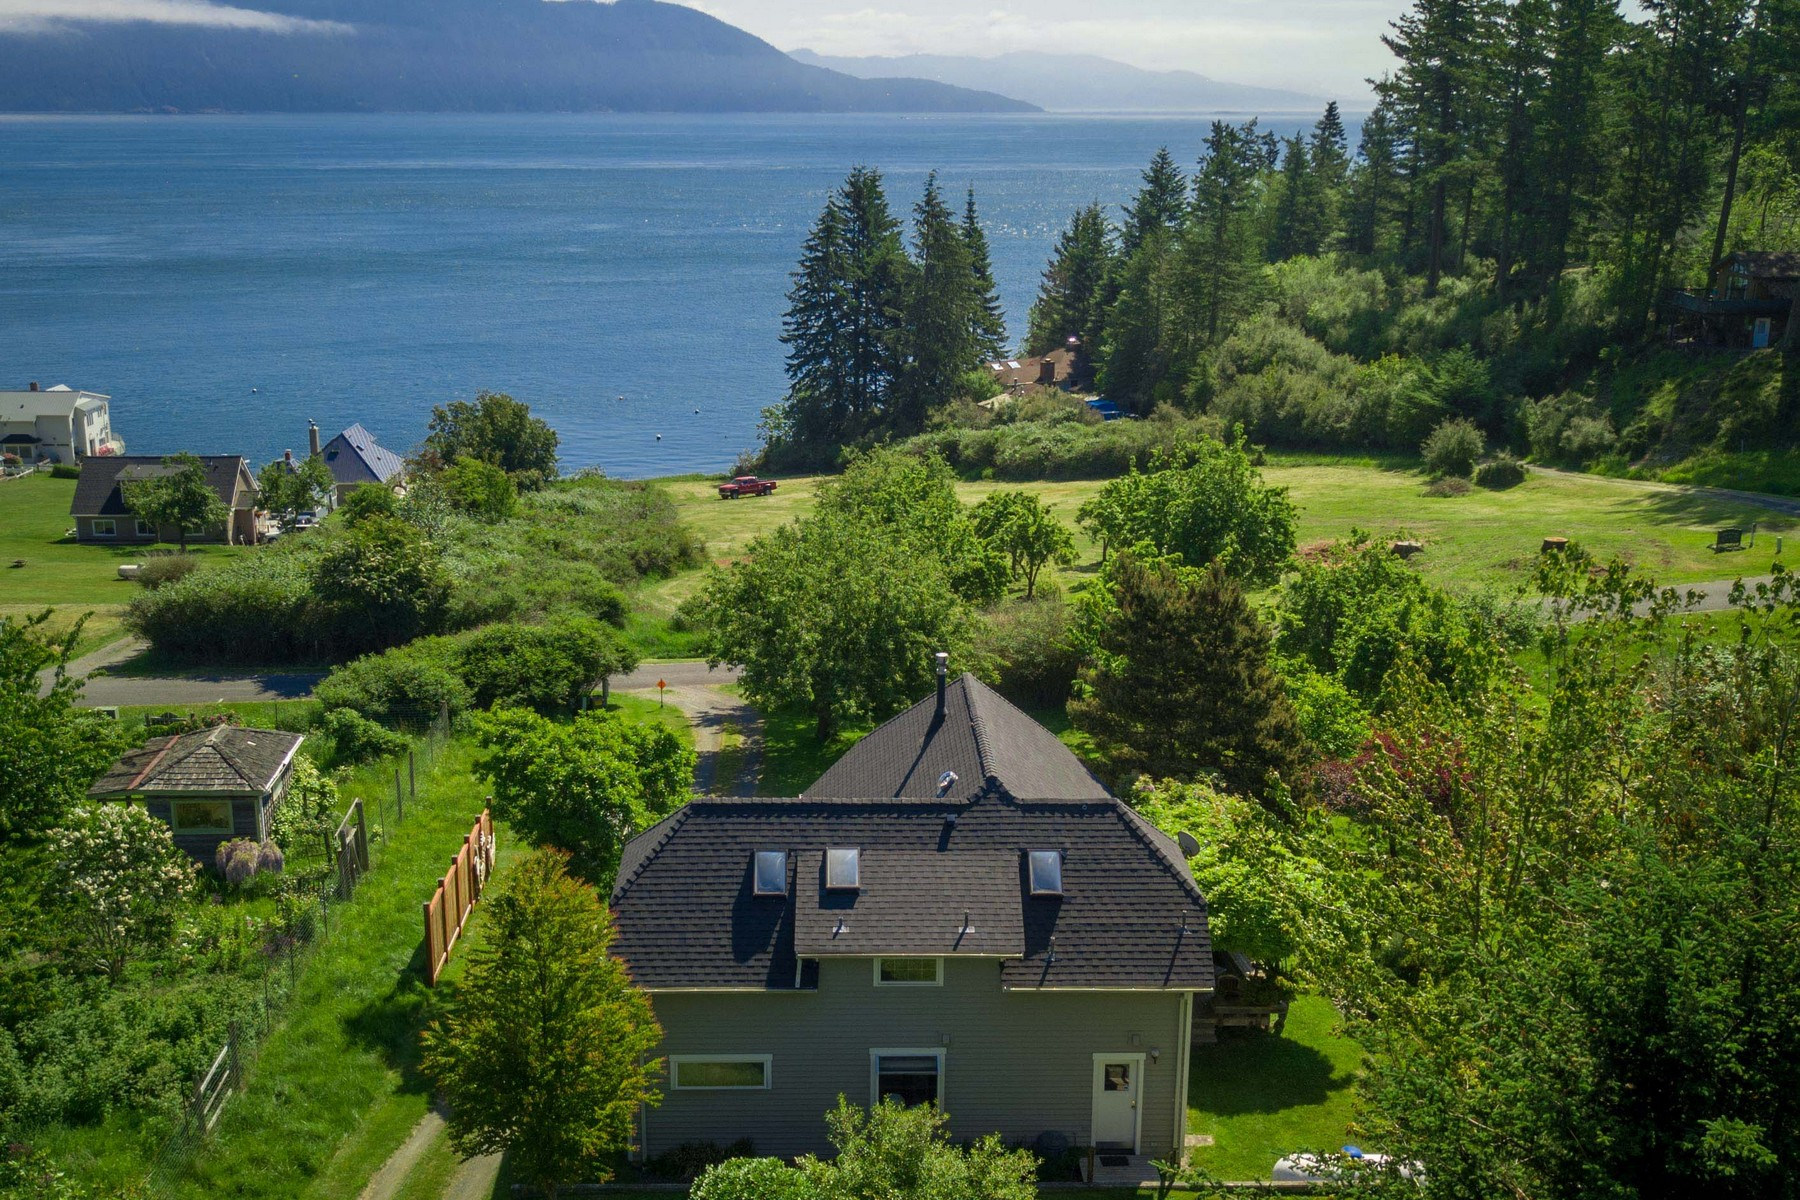 Single Family Homes for Sale at Northwest Garden Cottage on Orcas Island, WA 60 Seacliff Trail Olga, Washington 98279 United States